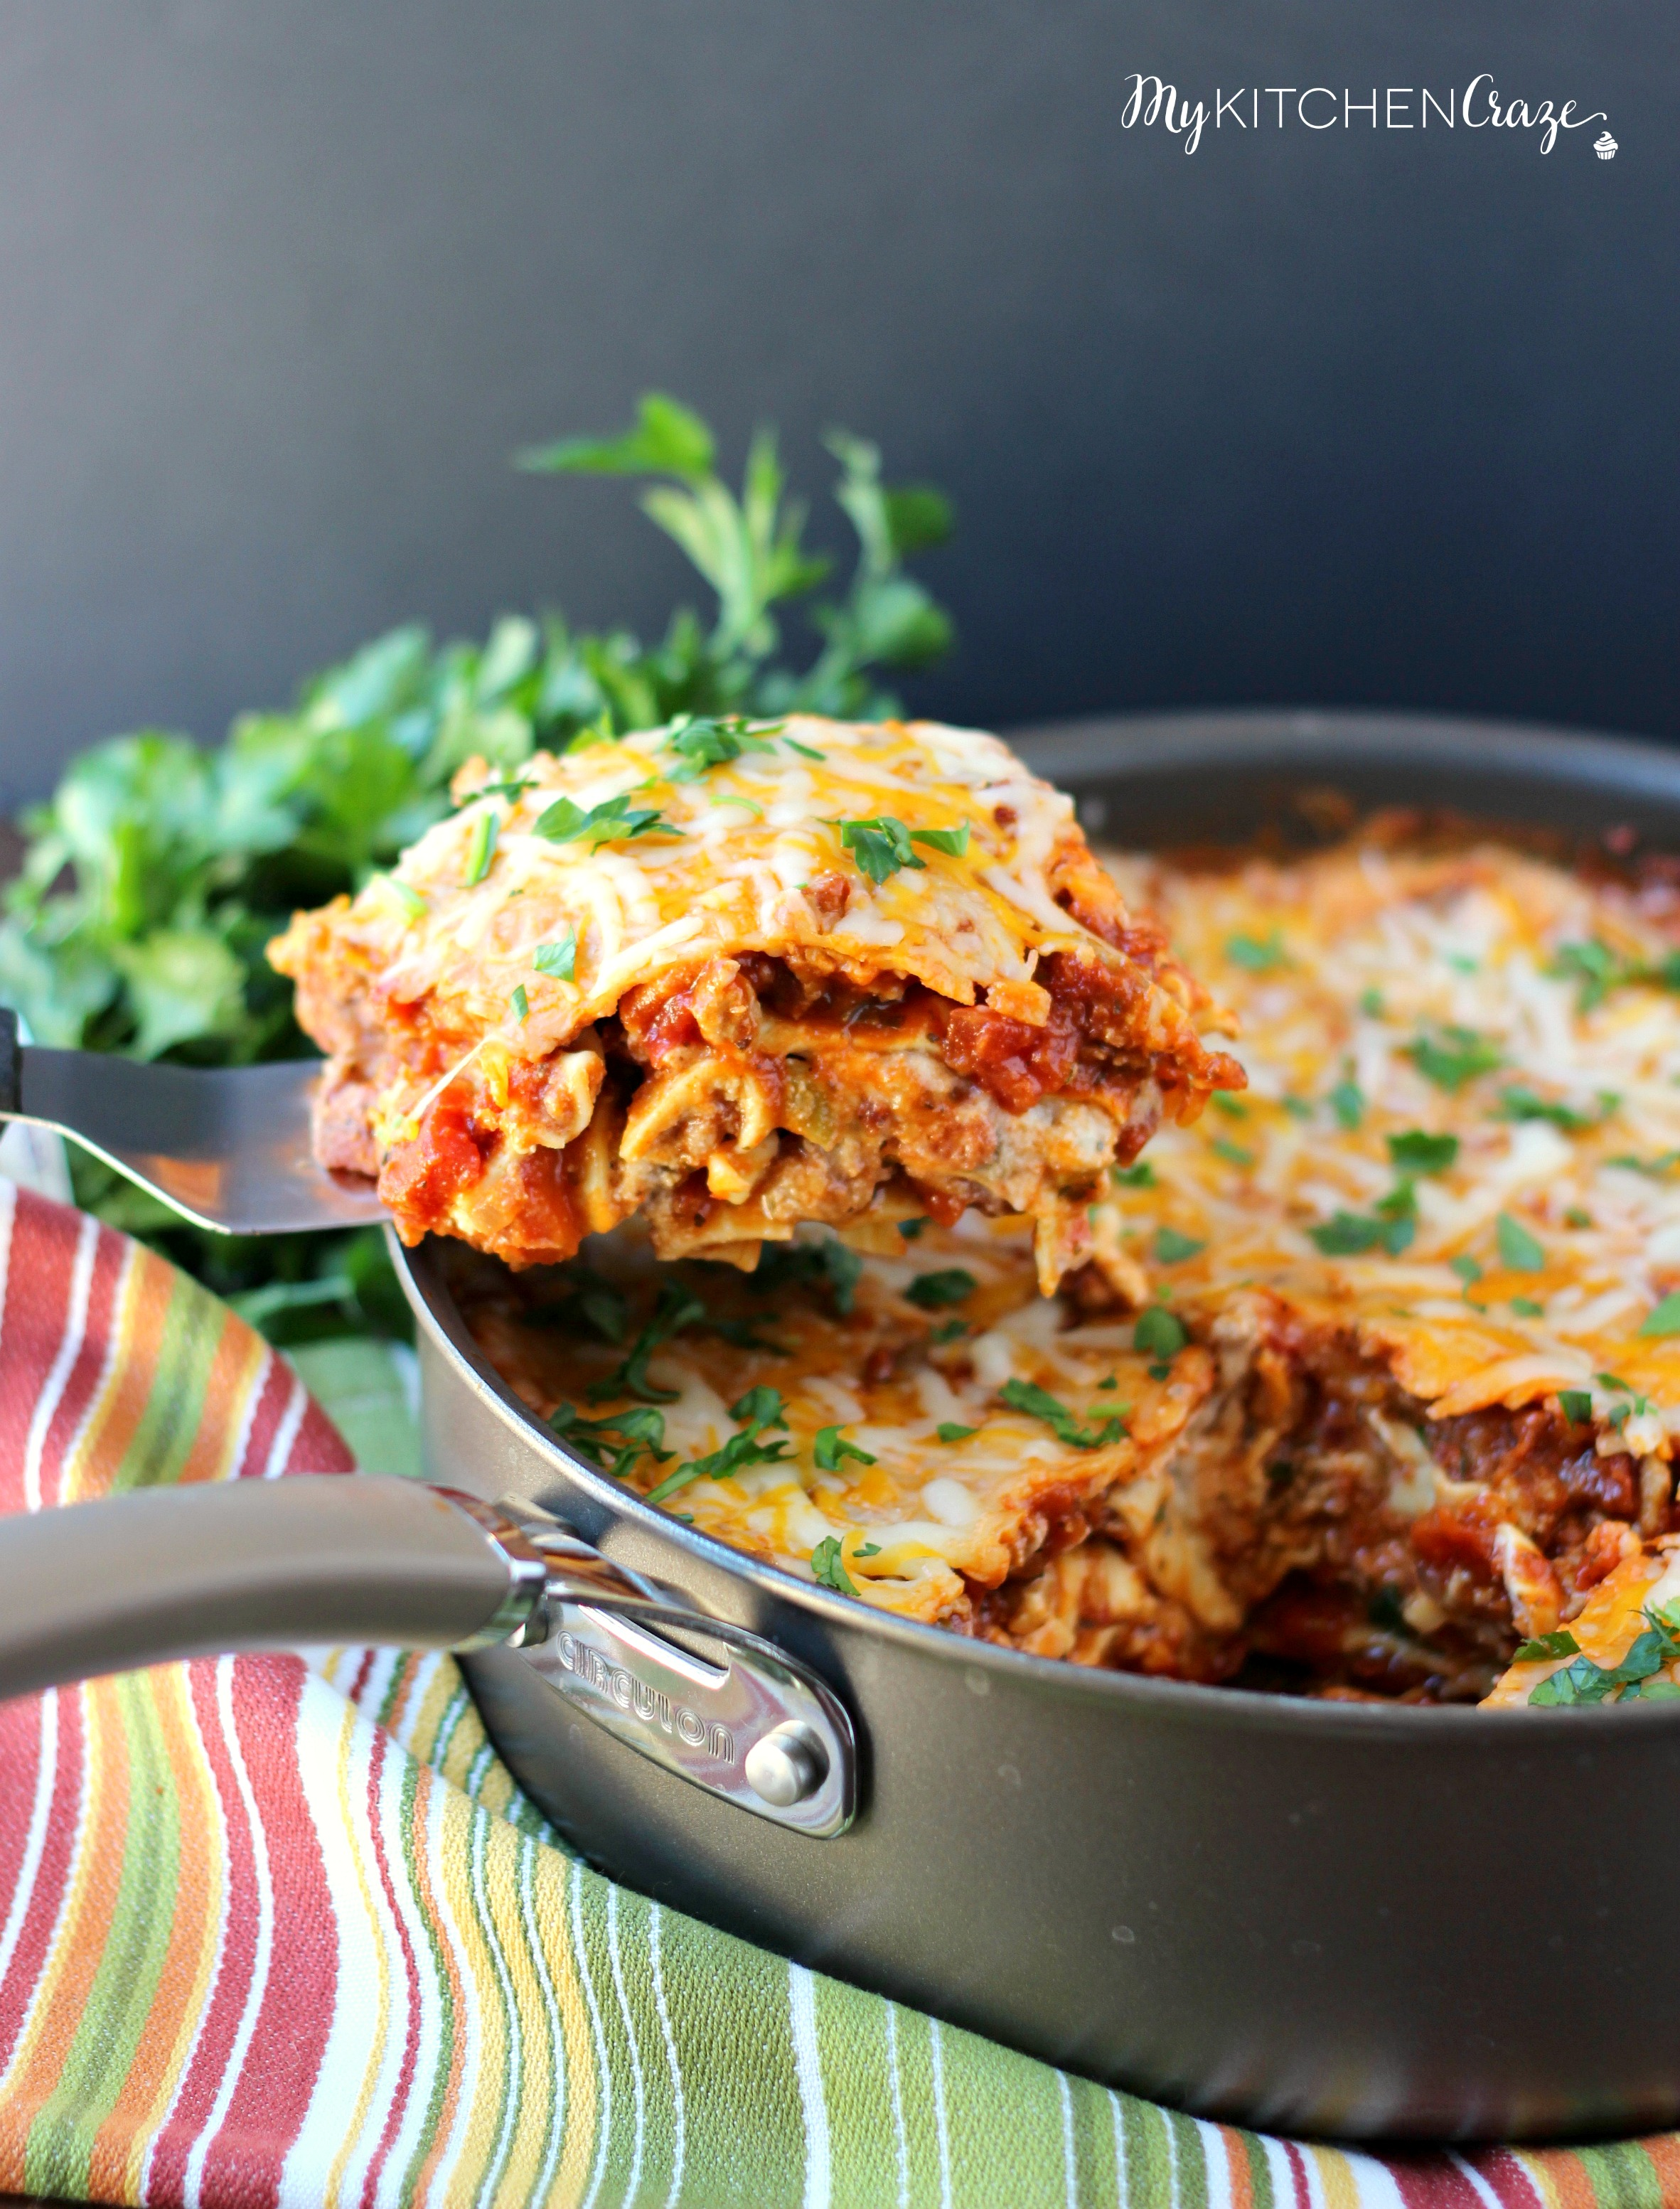 Simple Skillet Lasagna ~ mykitchencraze.com ~ Need an easy meal for dinner tonight? This skillet lasagna will be on your table in no time. Delicious!